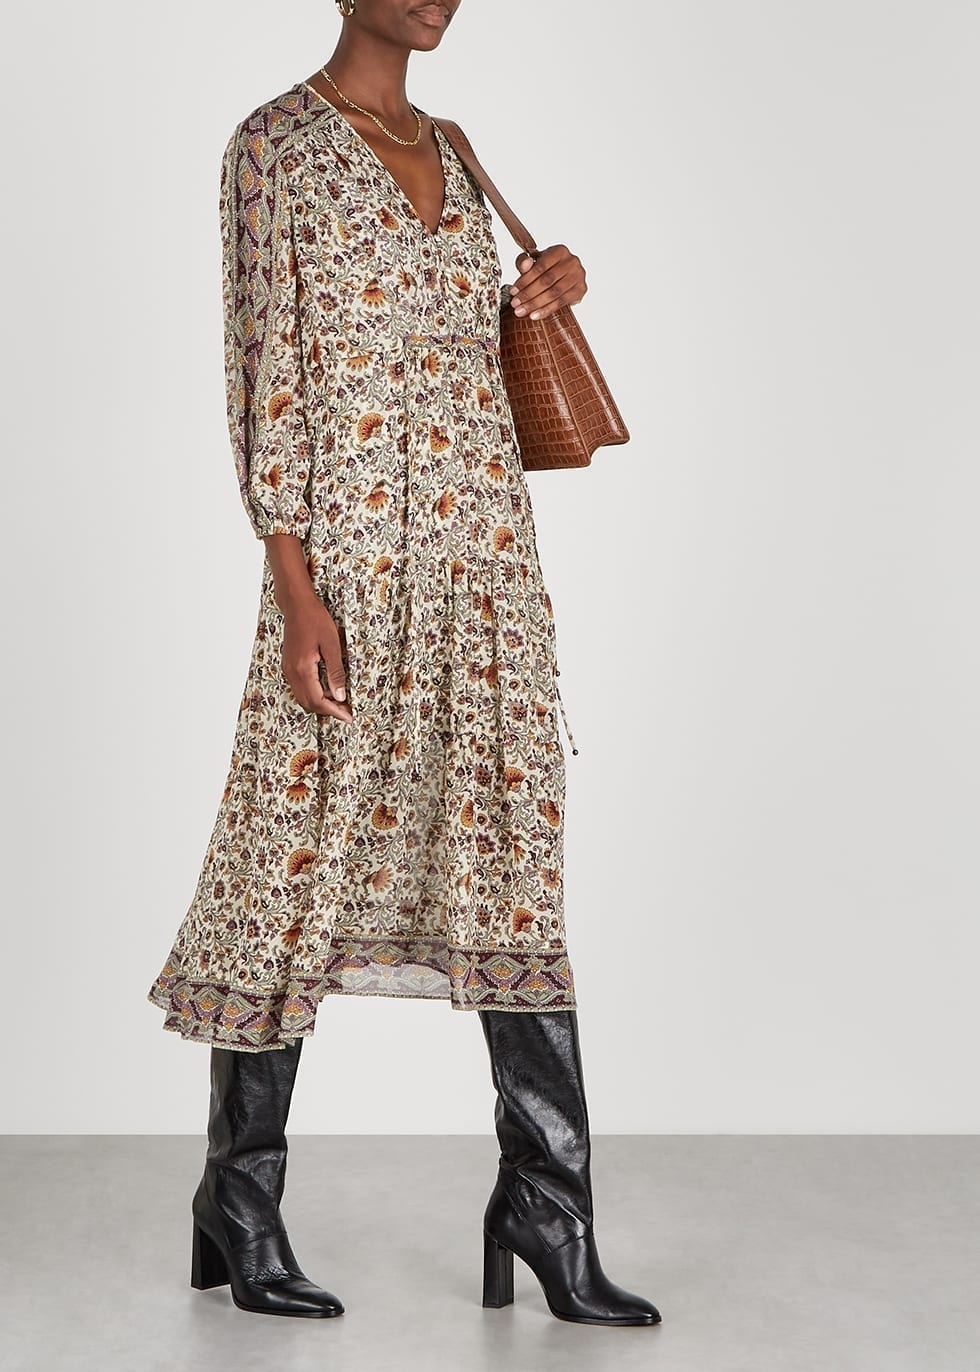 VERONICA BEARD Yoelle Printed Silk-chiffon Midi Dress